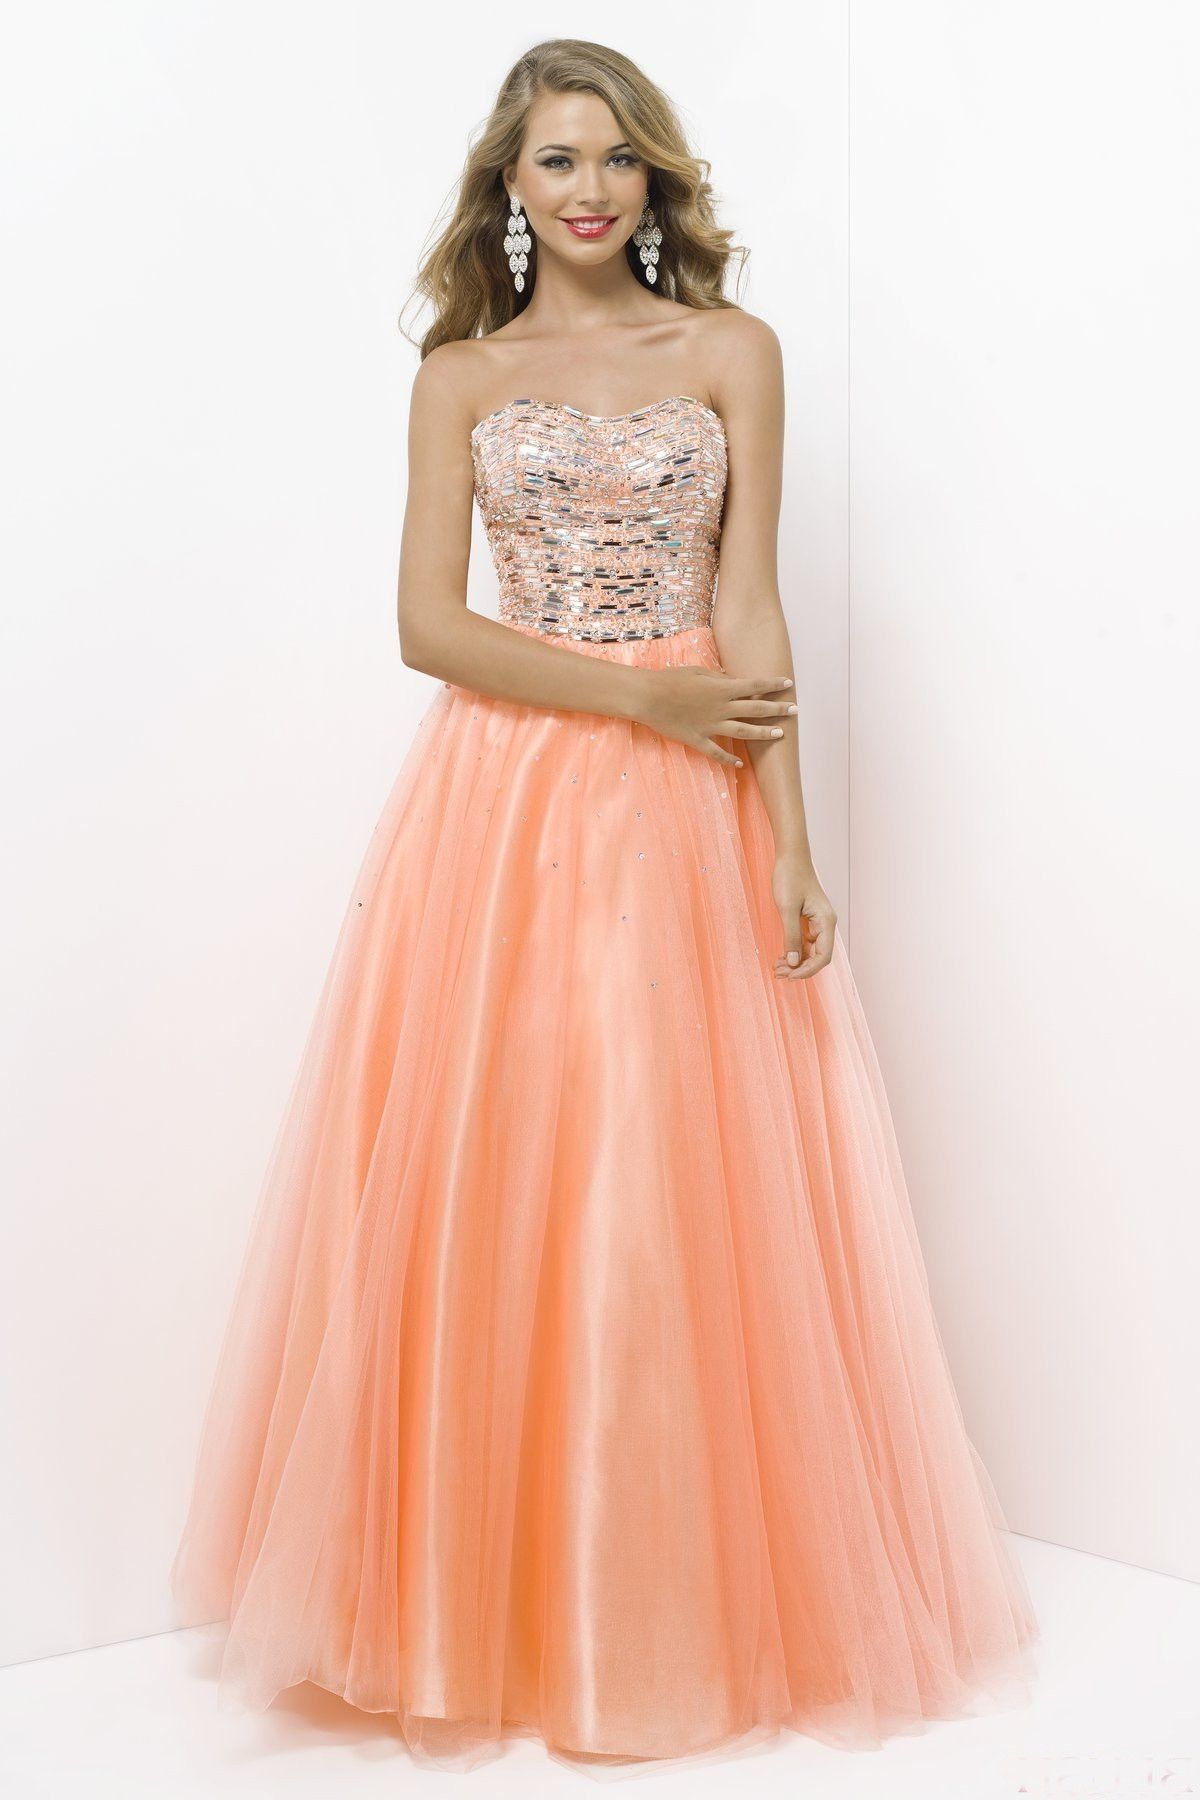 Dresses strapless for teenagers video